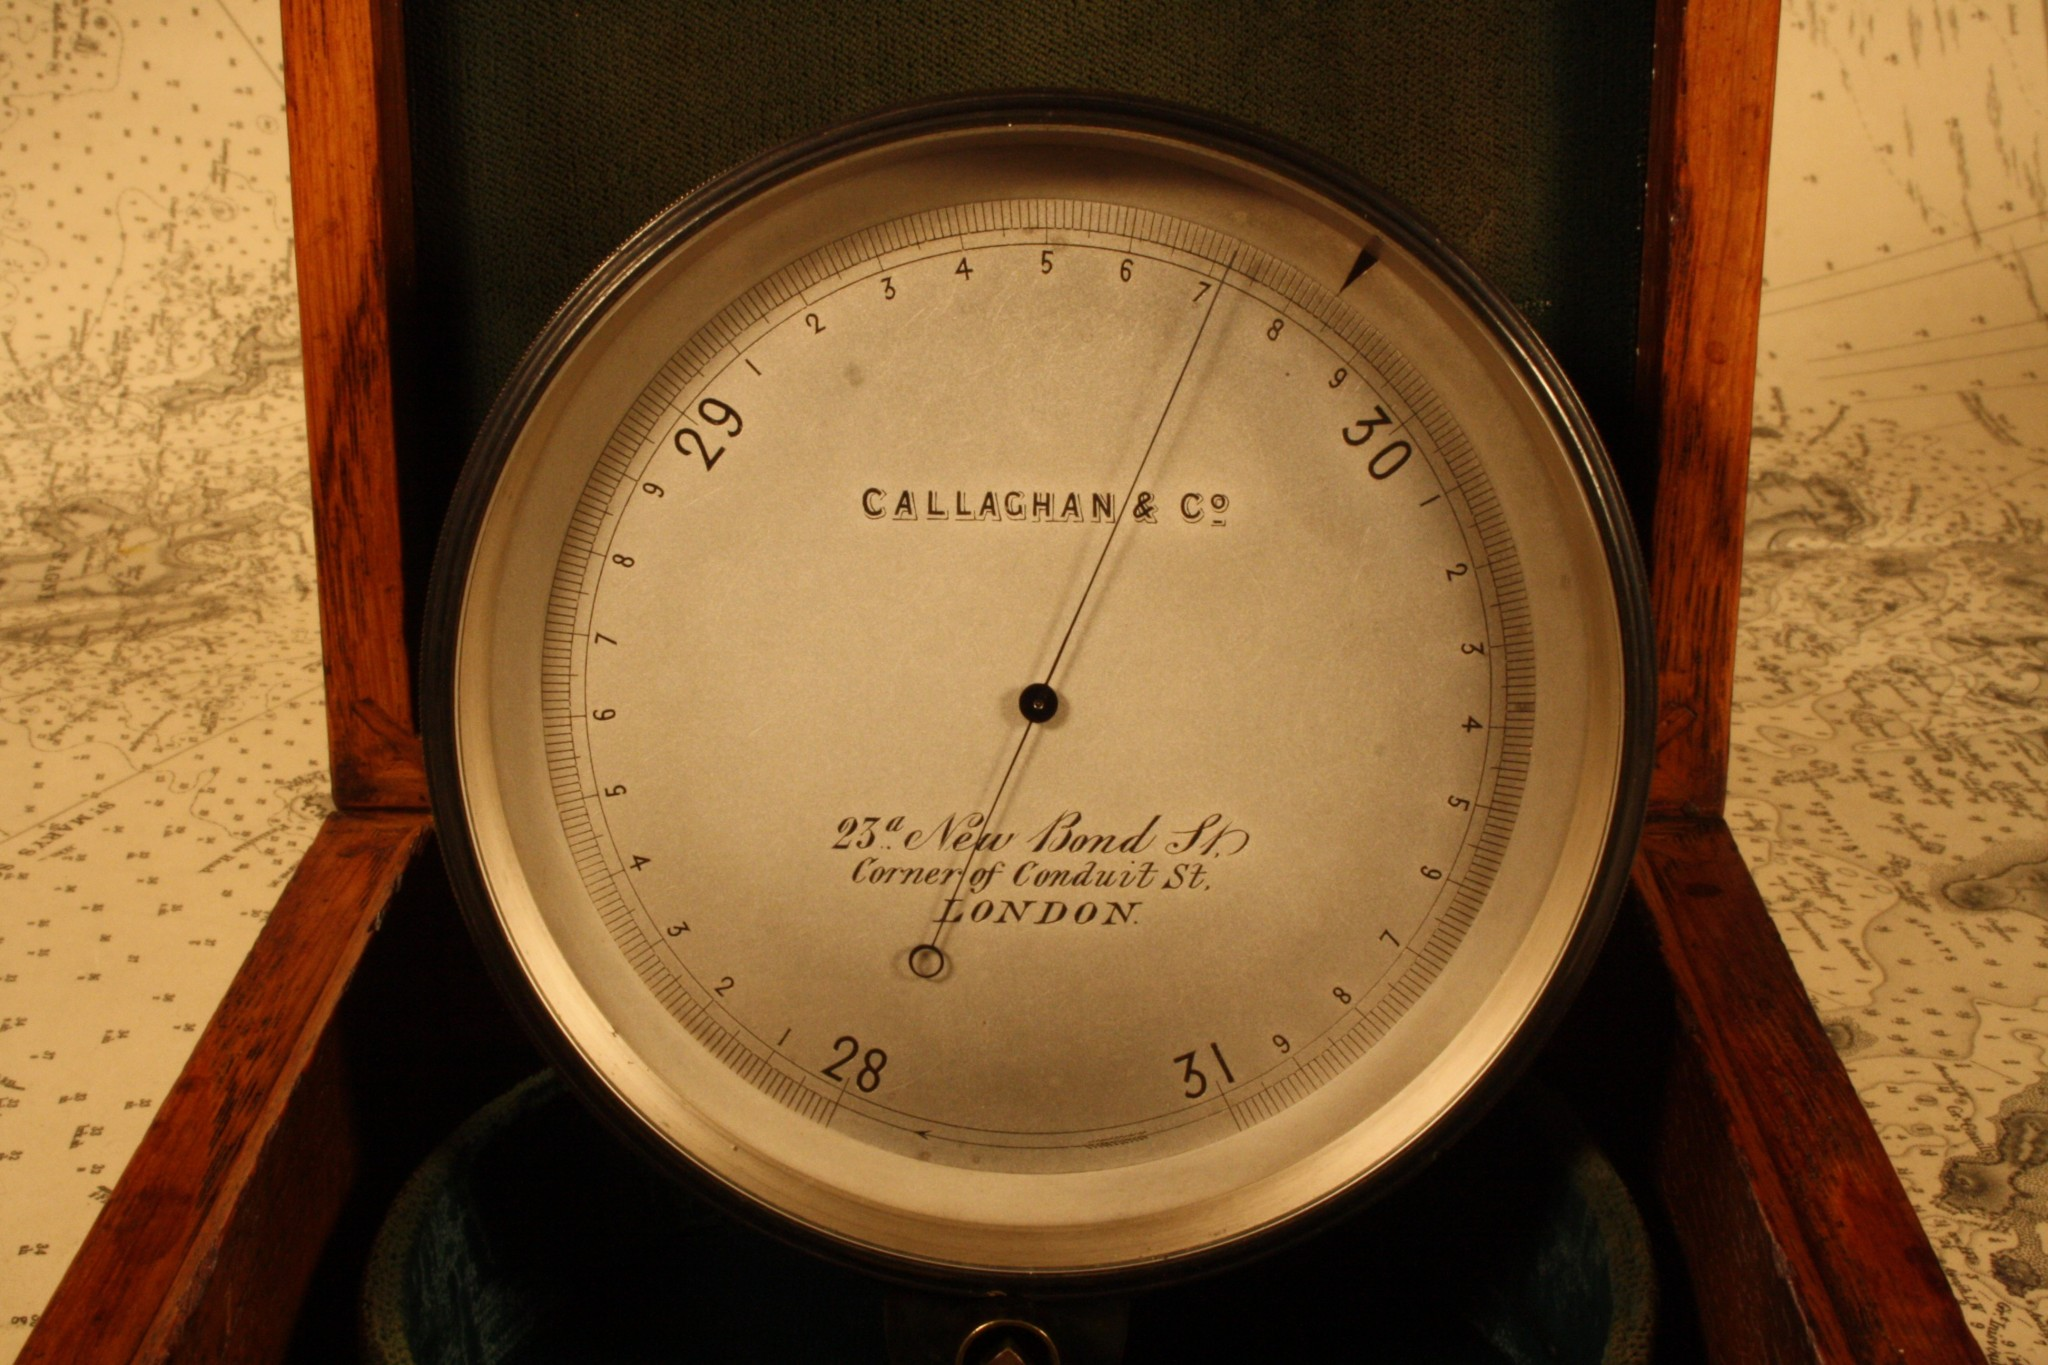 Image of Callaghan Chart Table Marine Barometer